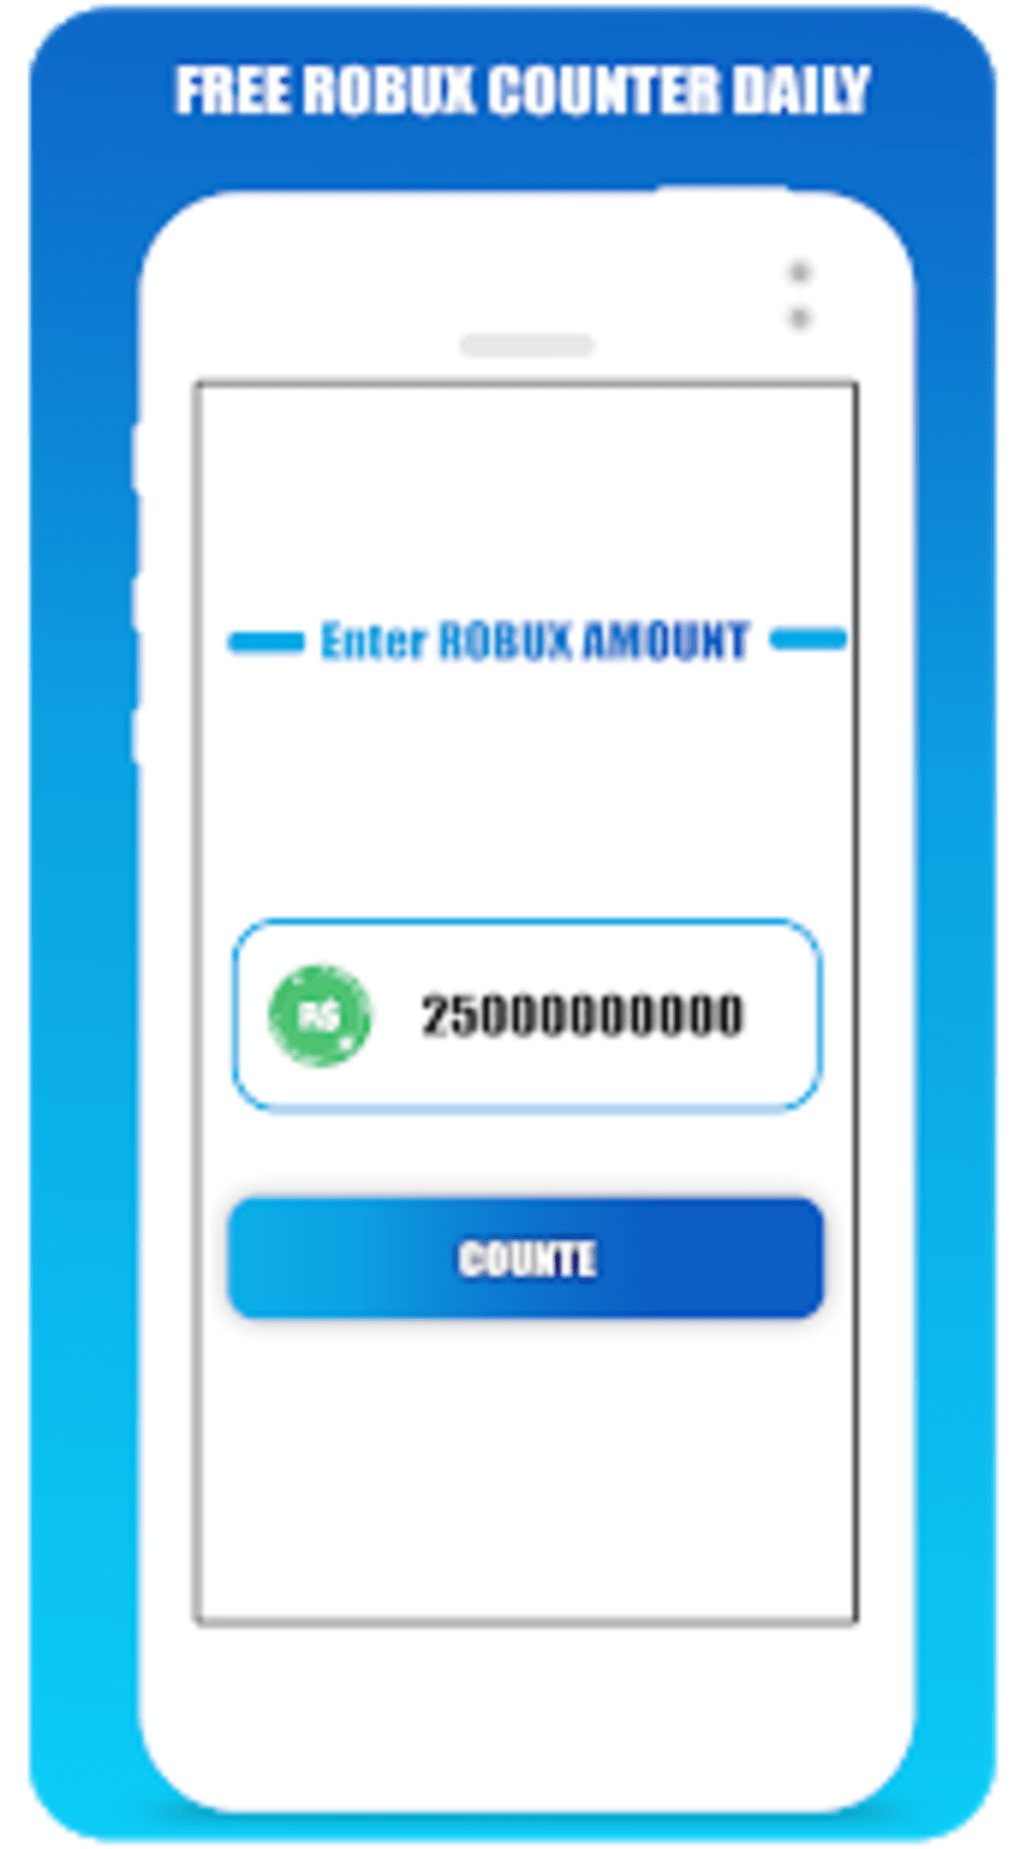 Free Robux Counter For Roblox Apk For Android Download